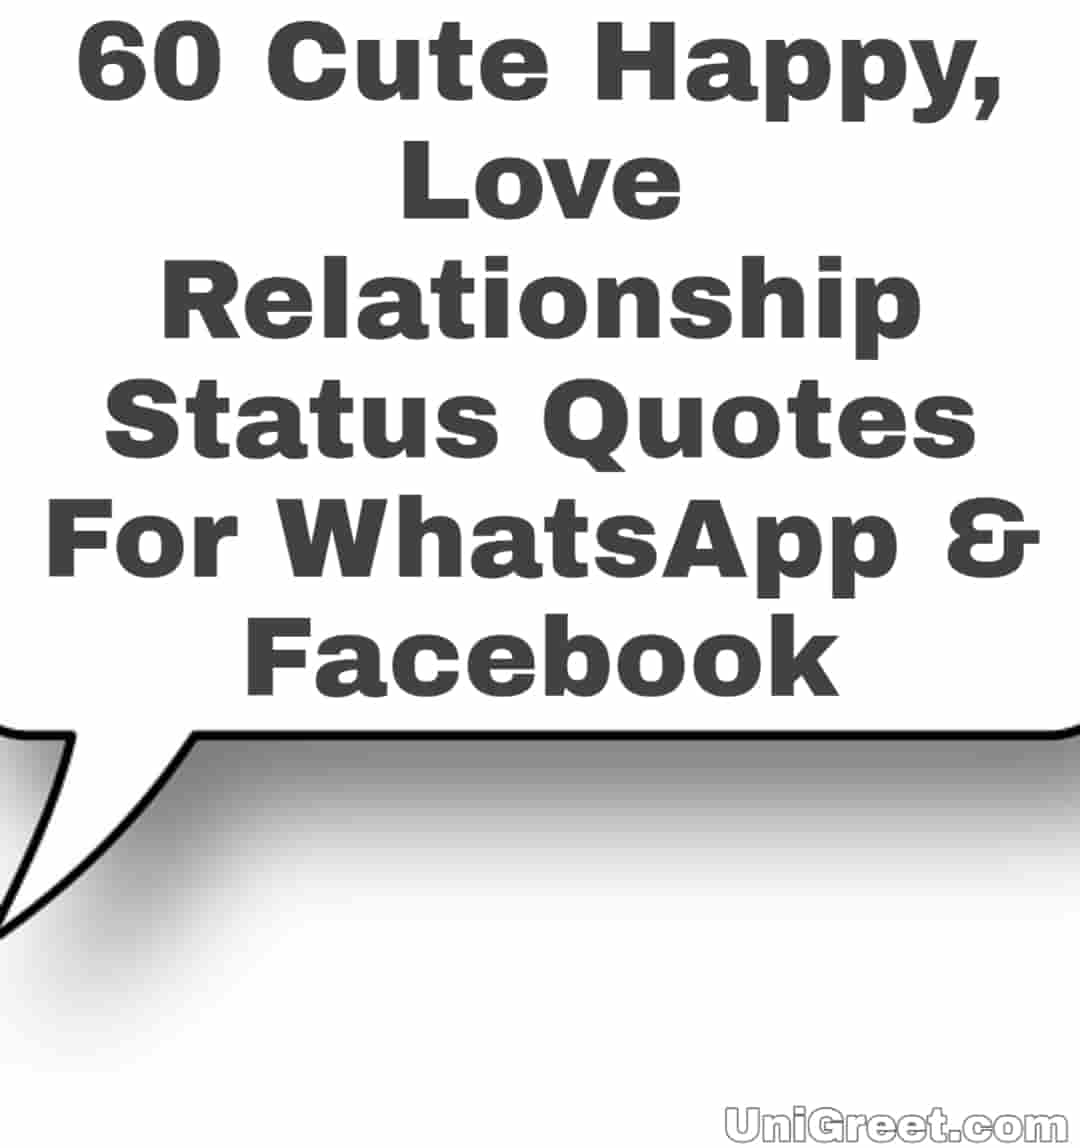 60 Cute Happy, Love Relationship Status Quotes For WhatsApp & Facebook